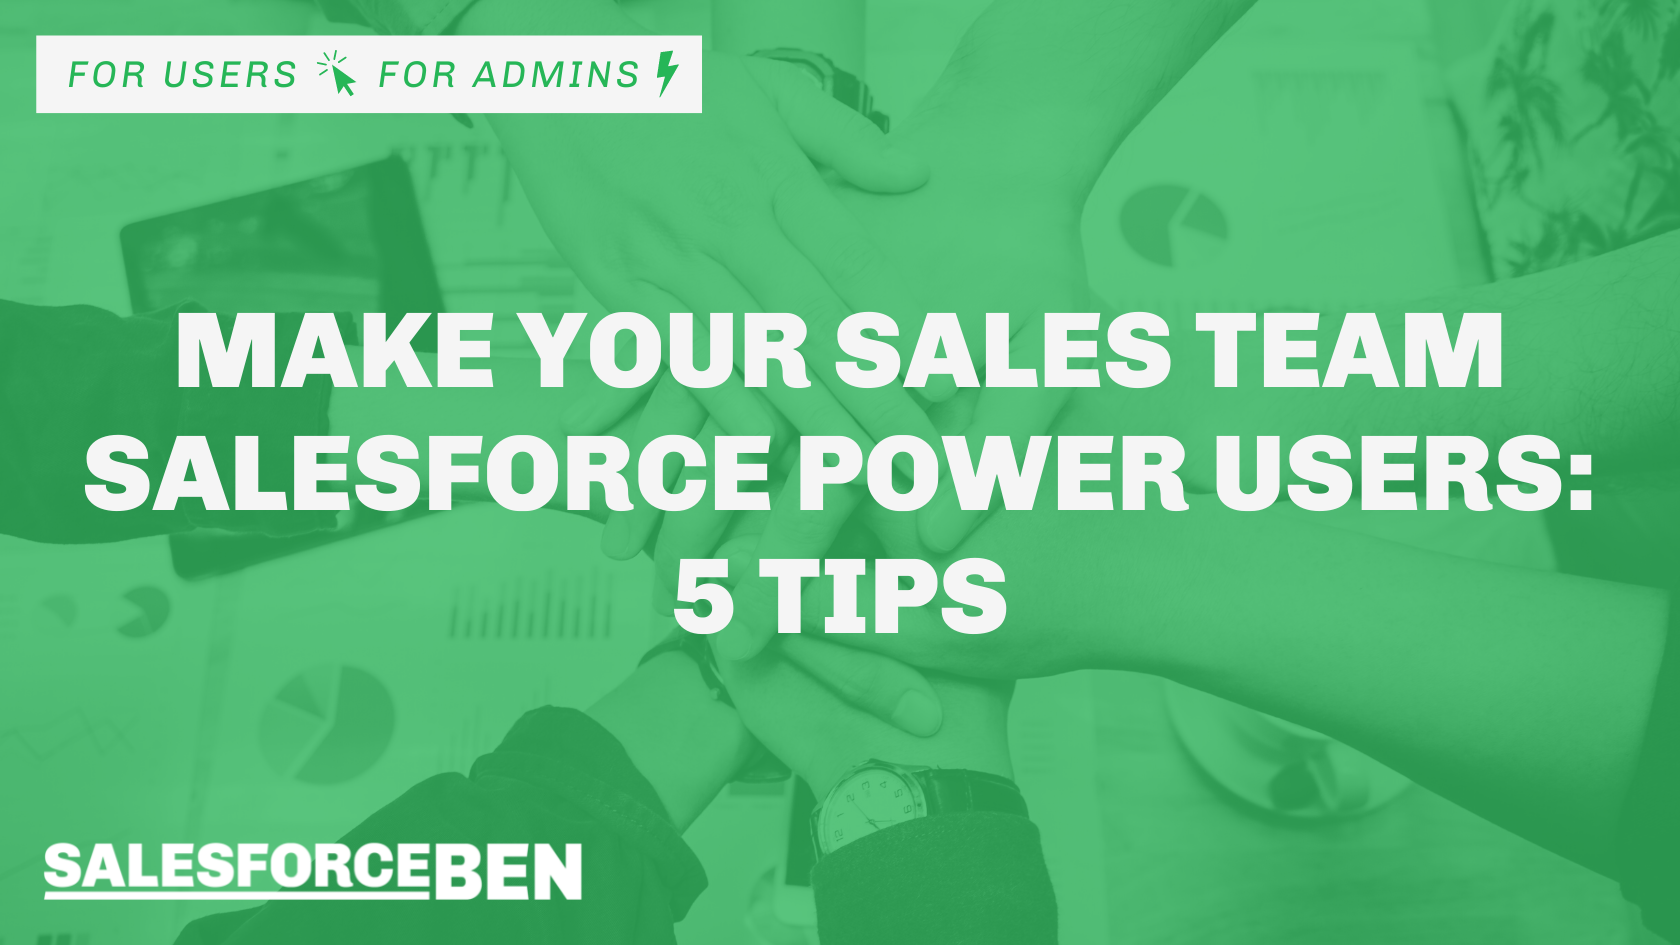 Make your Sales Team Salesforce Power Users: 5 Tips